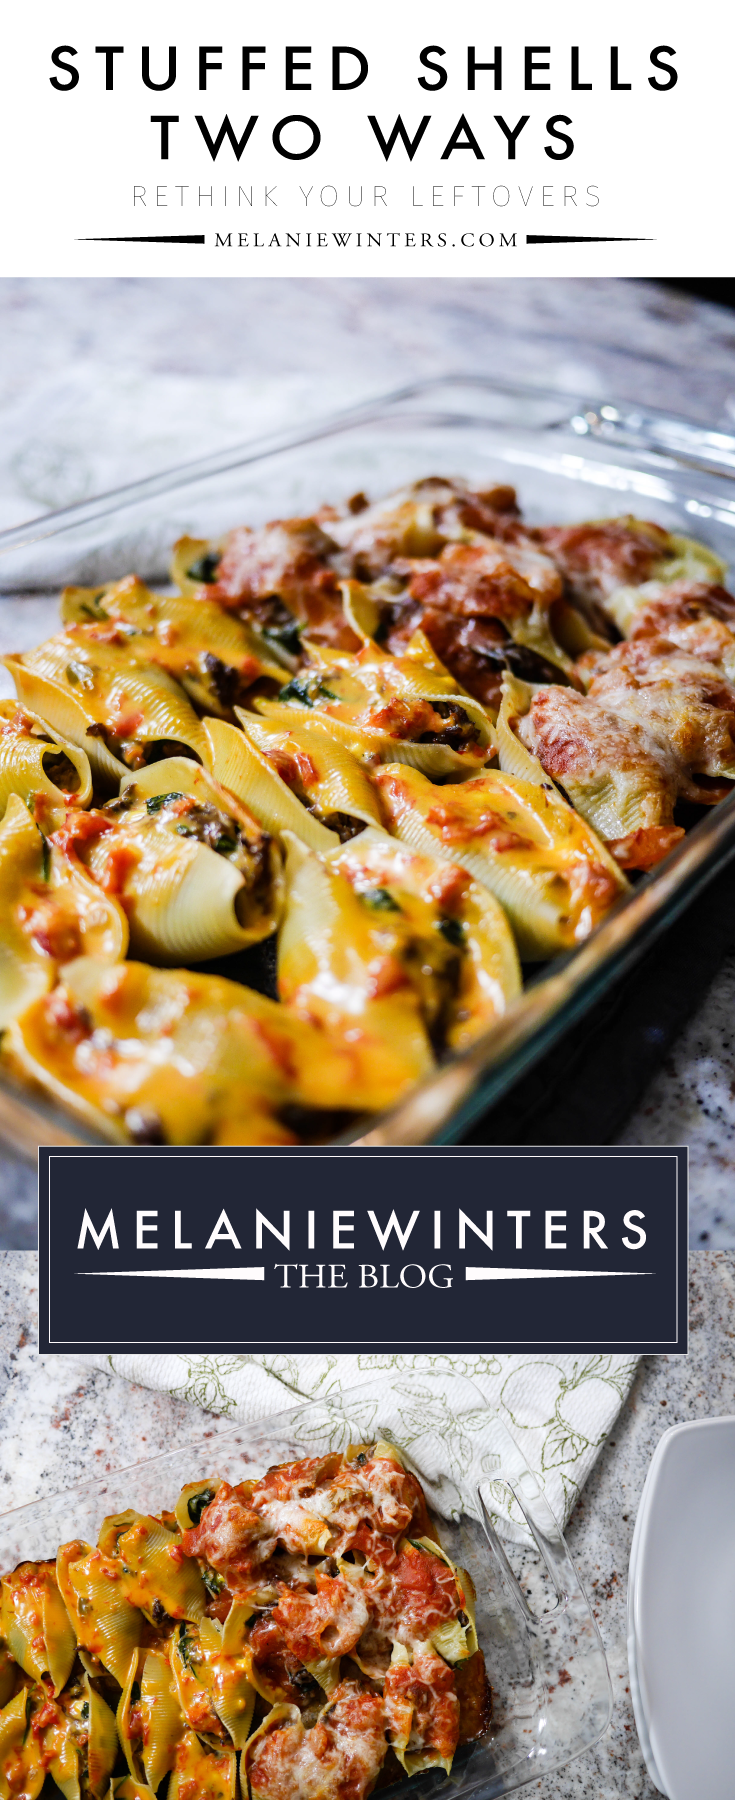 It's time to rethink your leftovers. We combine three different leftovers that you wouldn't think go together to make one epic stuffed shells meal.